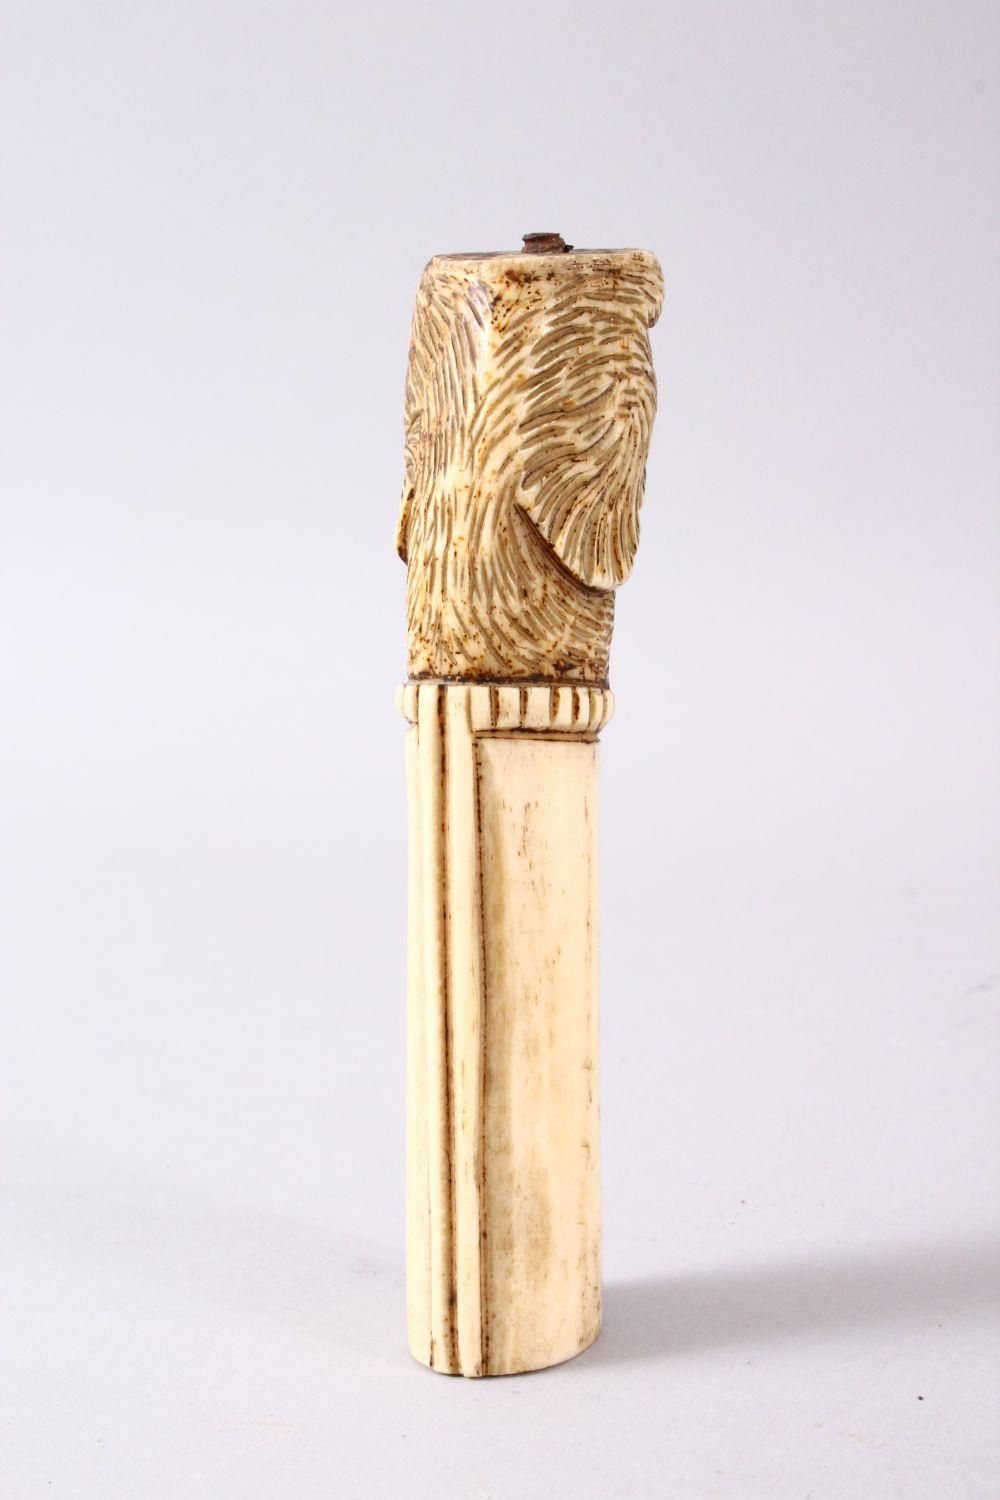 A 19TH CENTURY INDIAN MUGHAL CARVED IVORY BIRD FORMED DAGGER HANDLE, 13cm. - Image 4 of 6